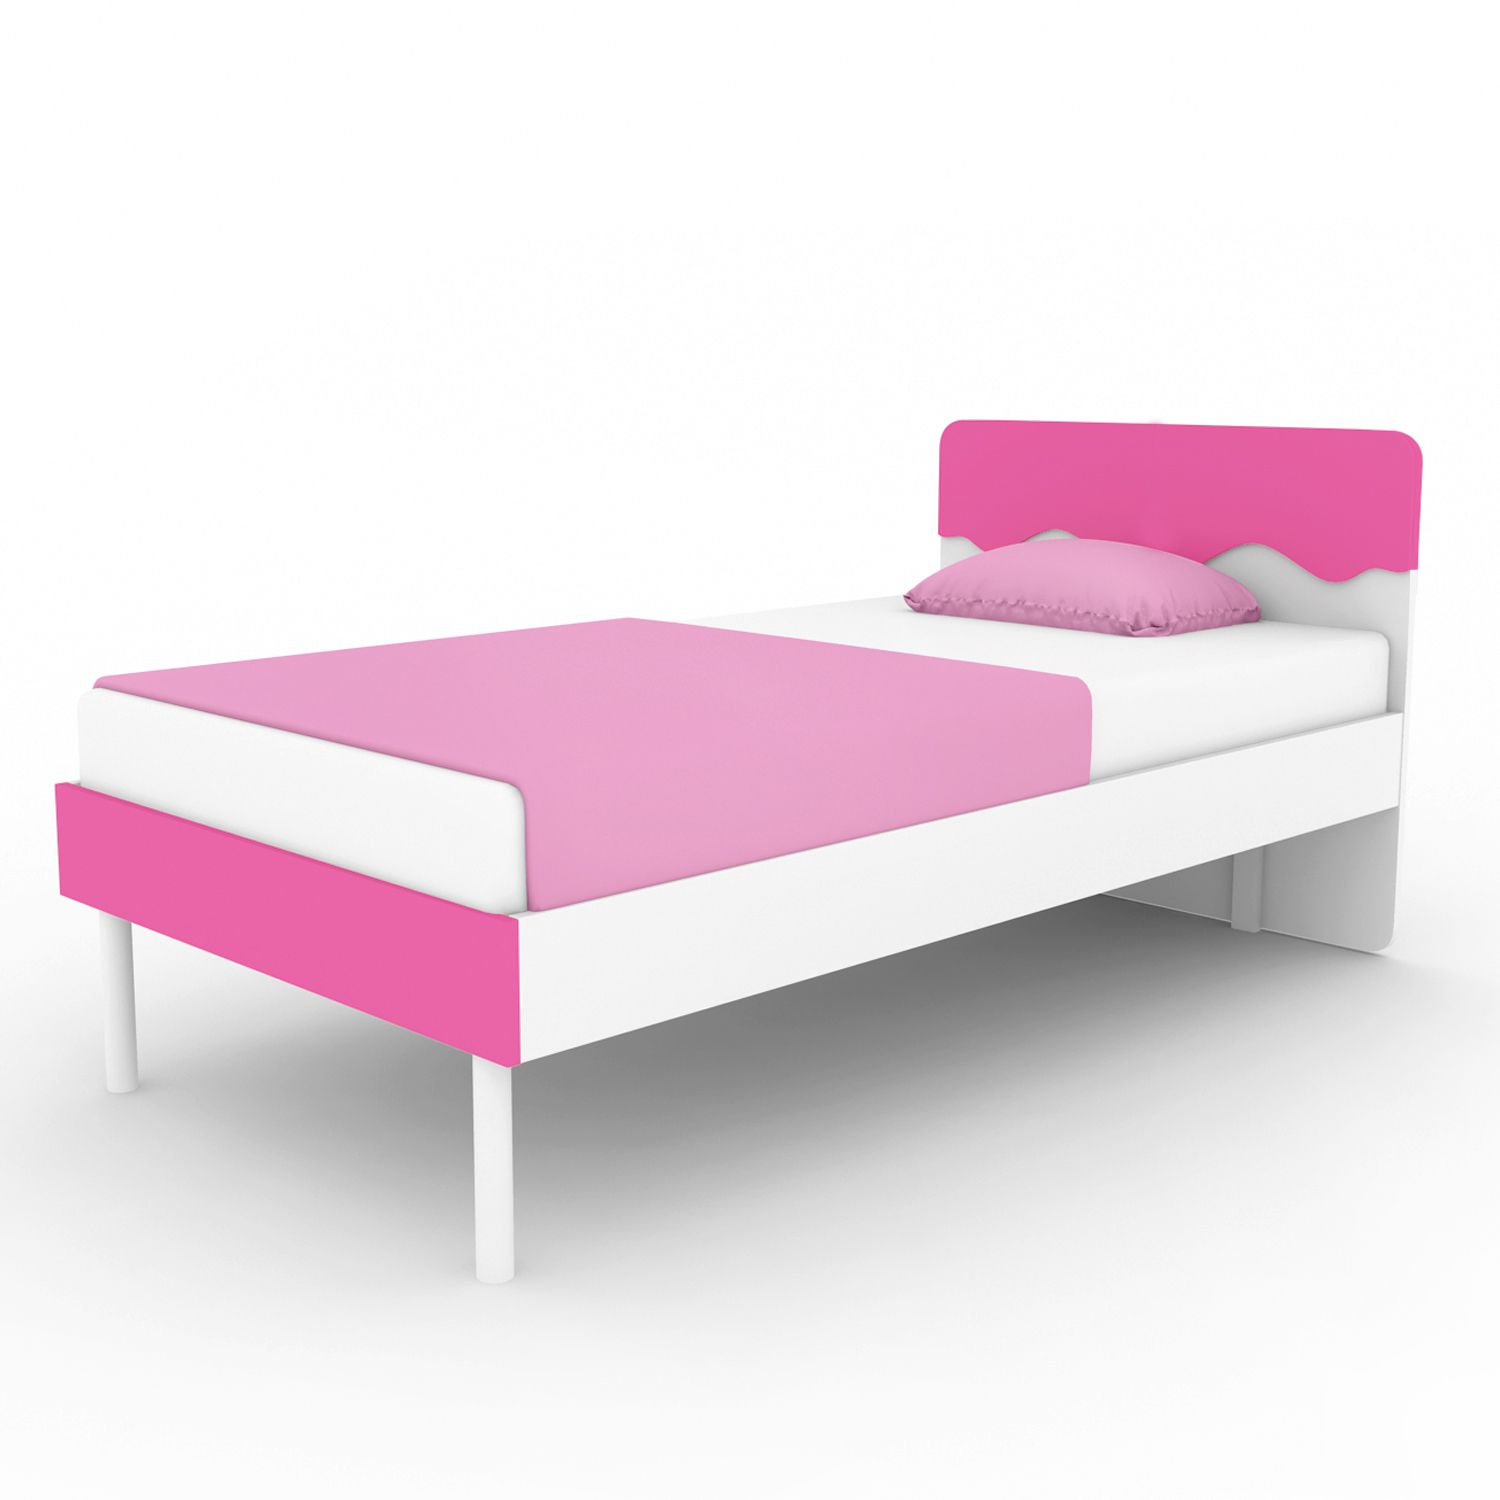 Single Bed Price Unicos Windy Kids Single Bed Available At Snapdeal For Rs 8999